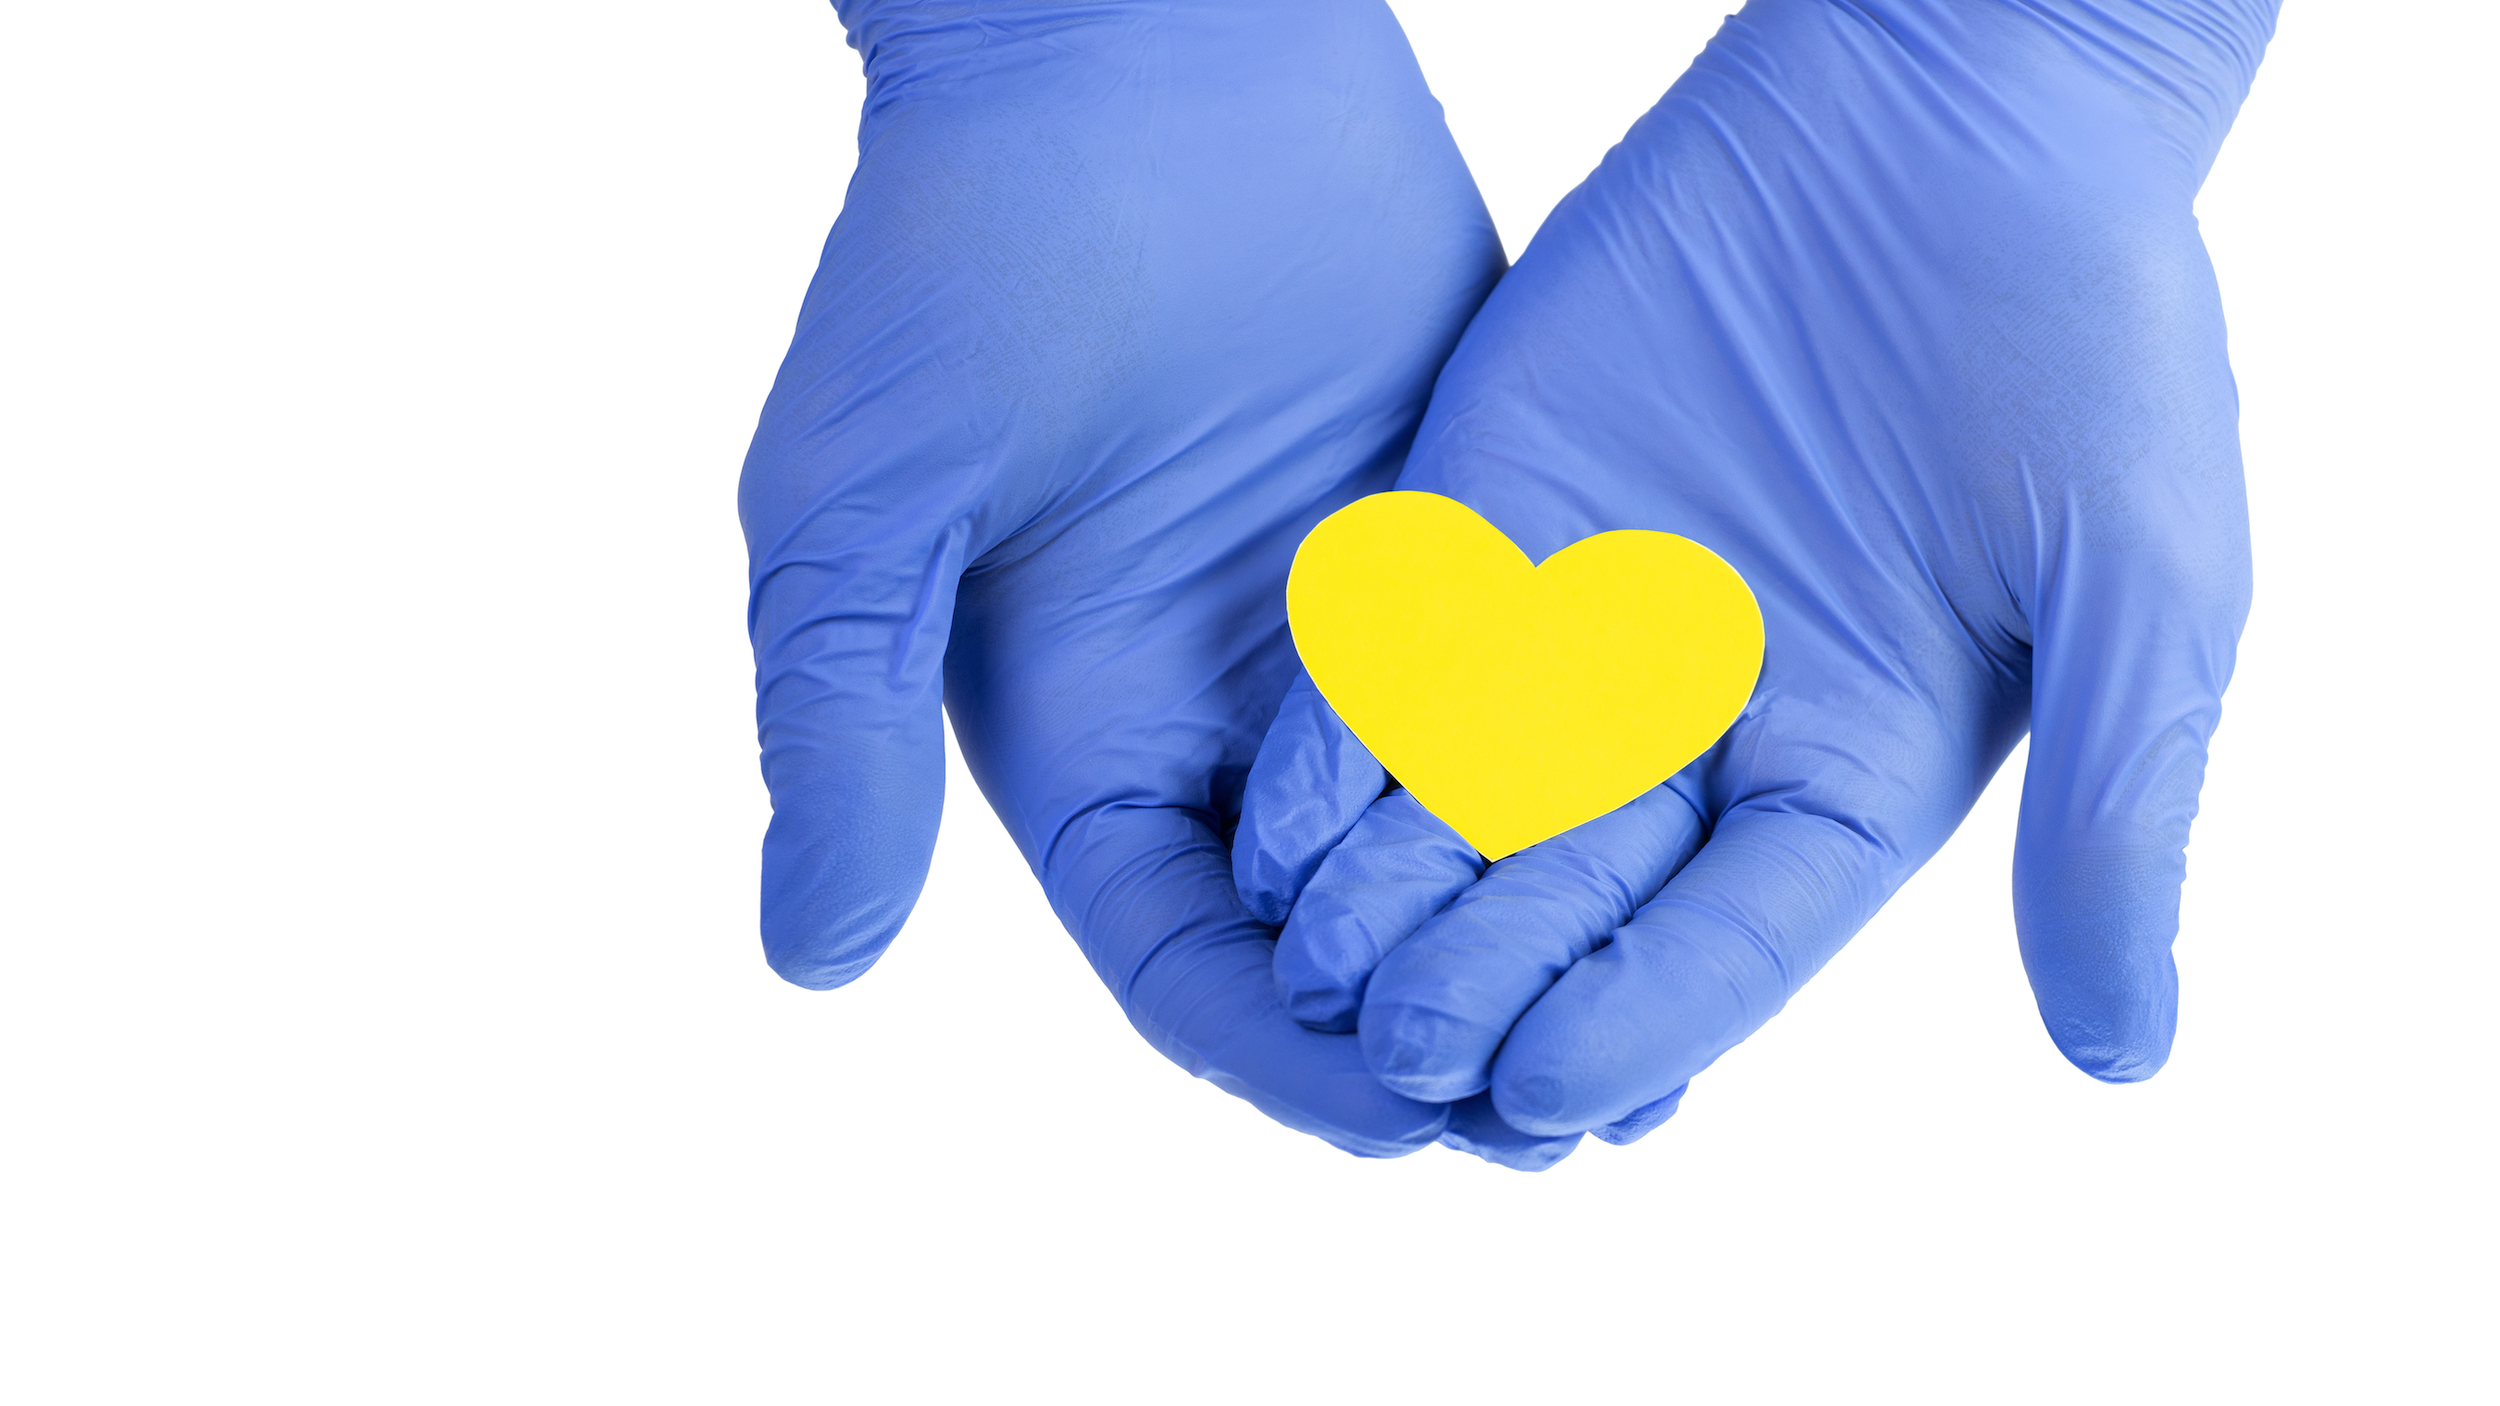 Rubber gloves holding yellow heart